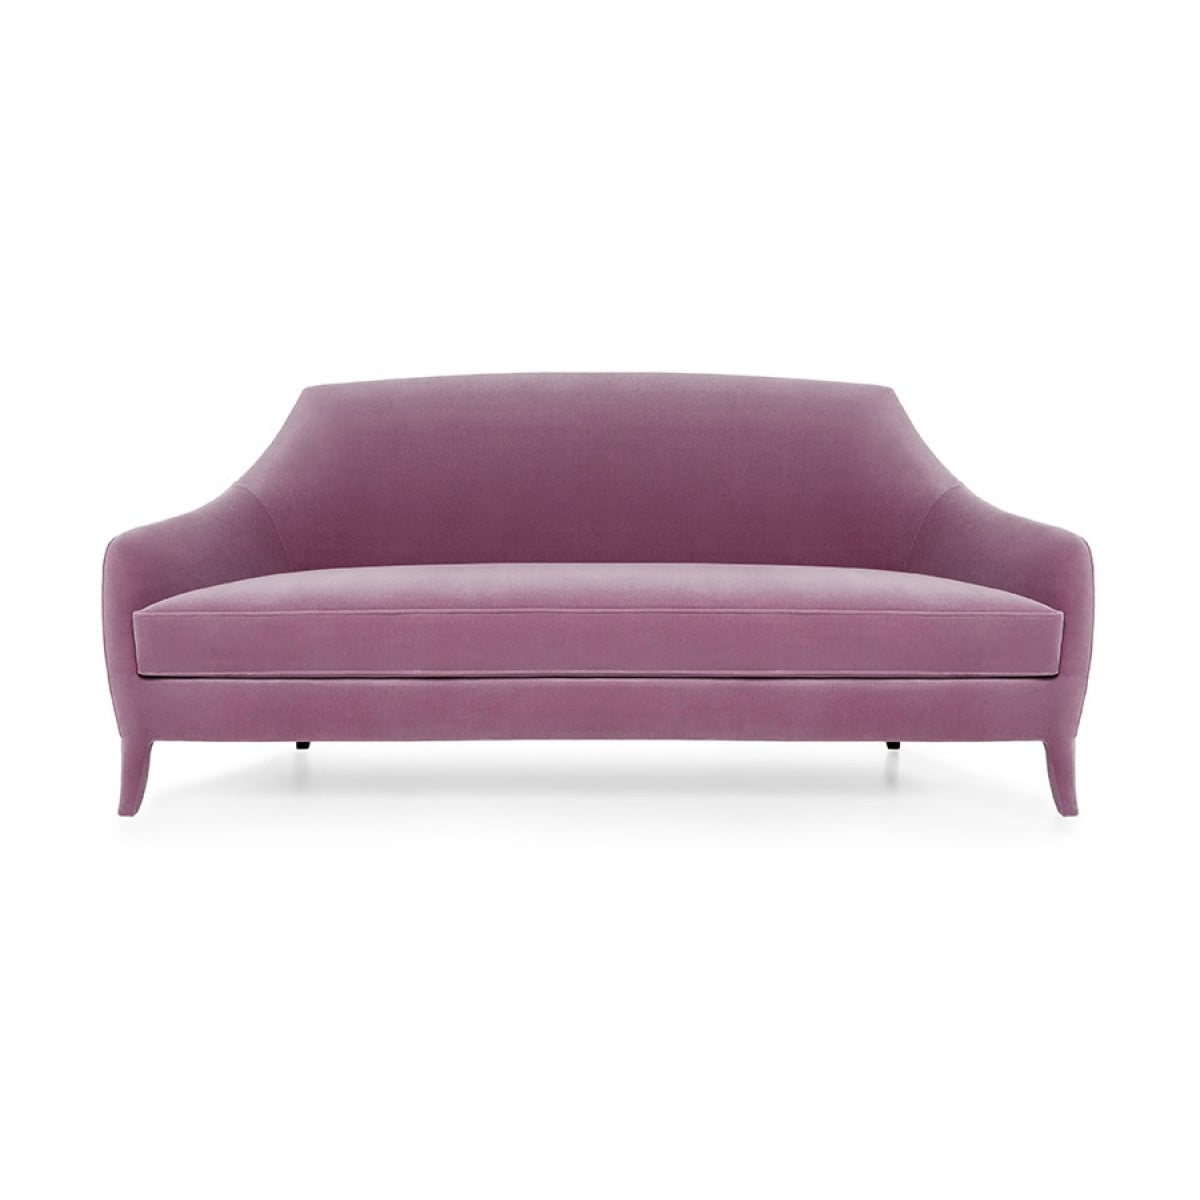 designer sofa purple sofa margaret swanky interiors